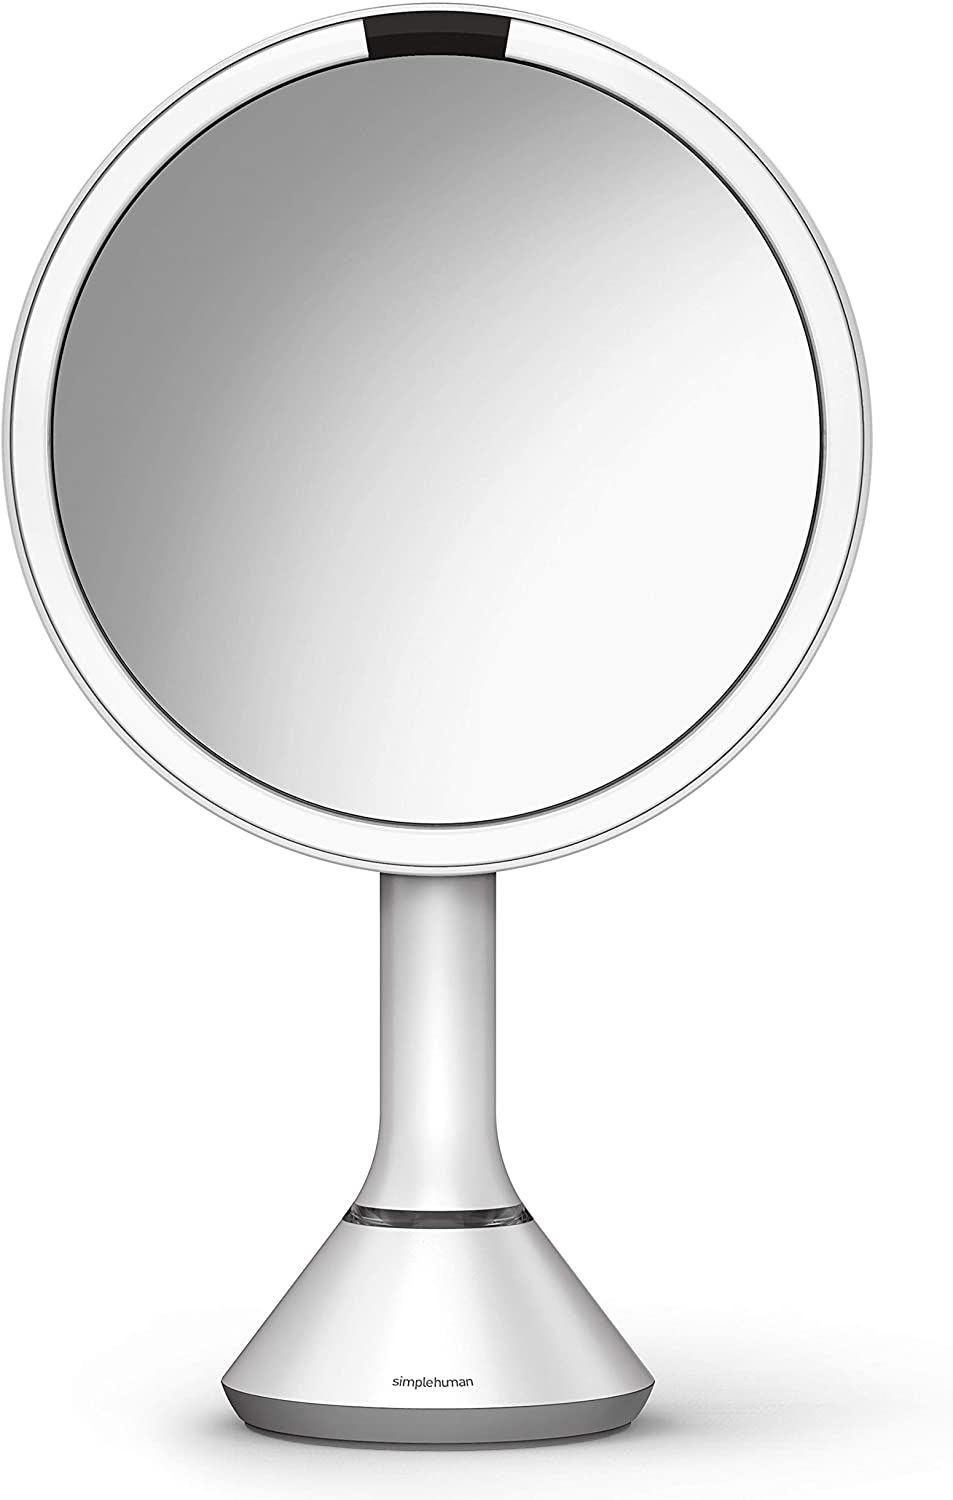 simplehuman Round Sensor Makeup Mirror with Touch-Control Dual Light Settings